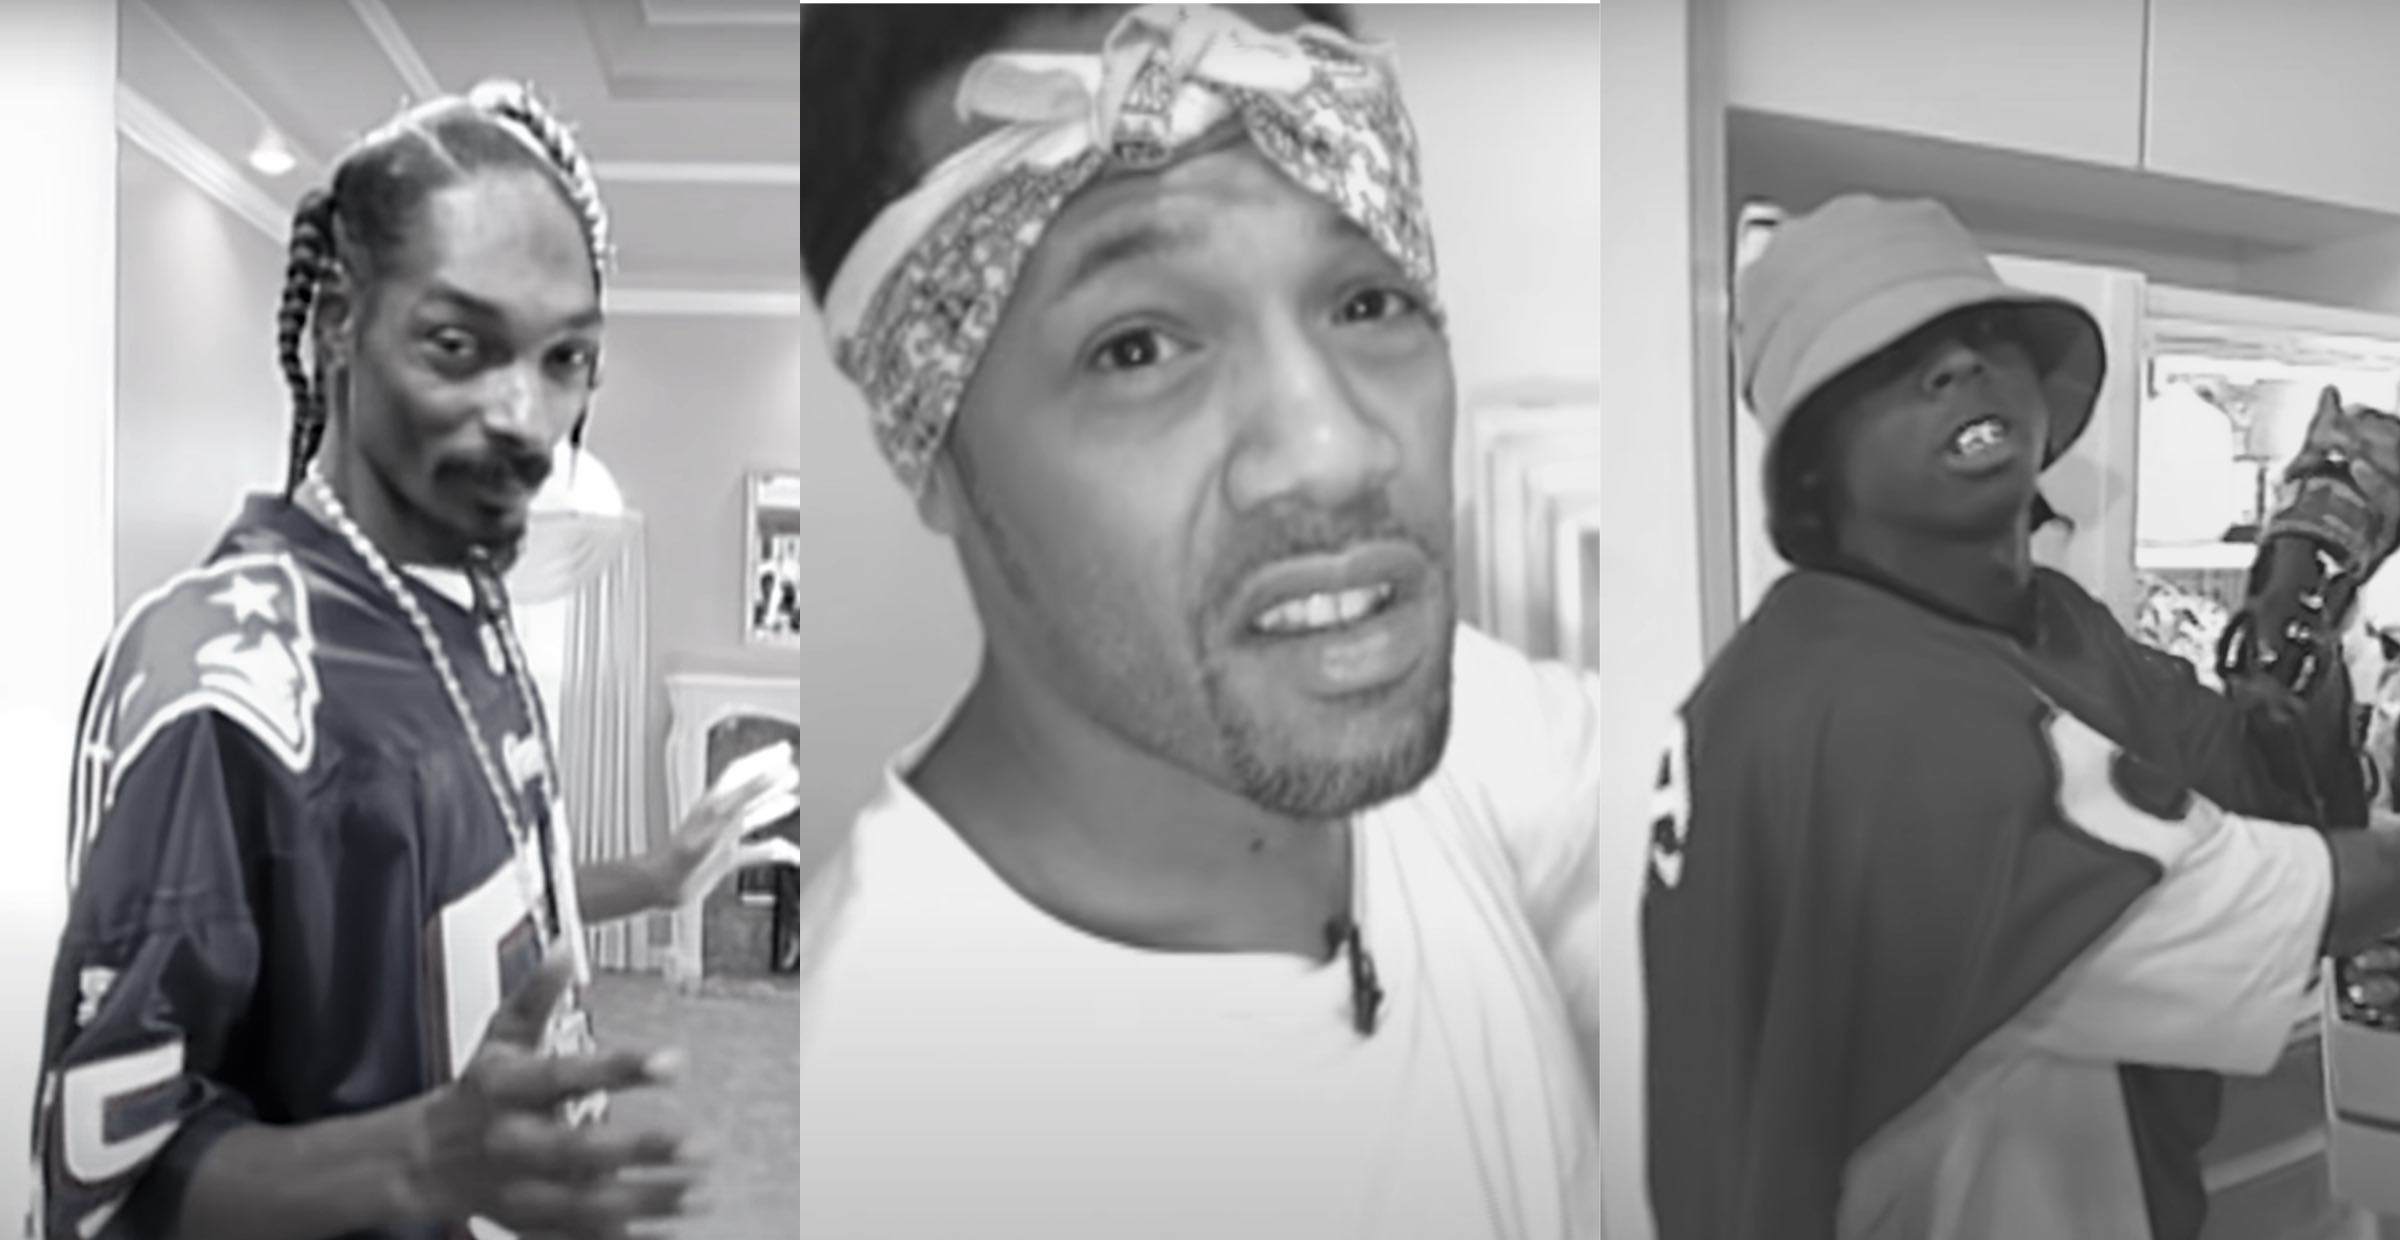 MTV Cribs episodes Snoop Dogg, Redman, Lil Wayne